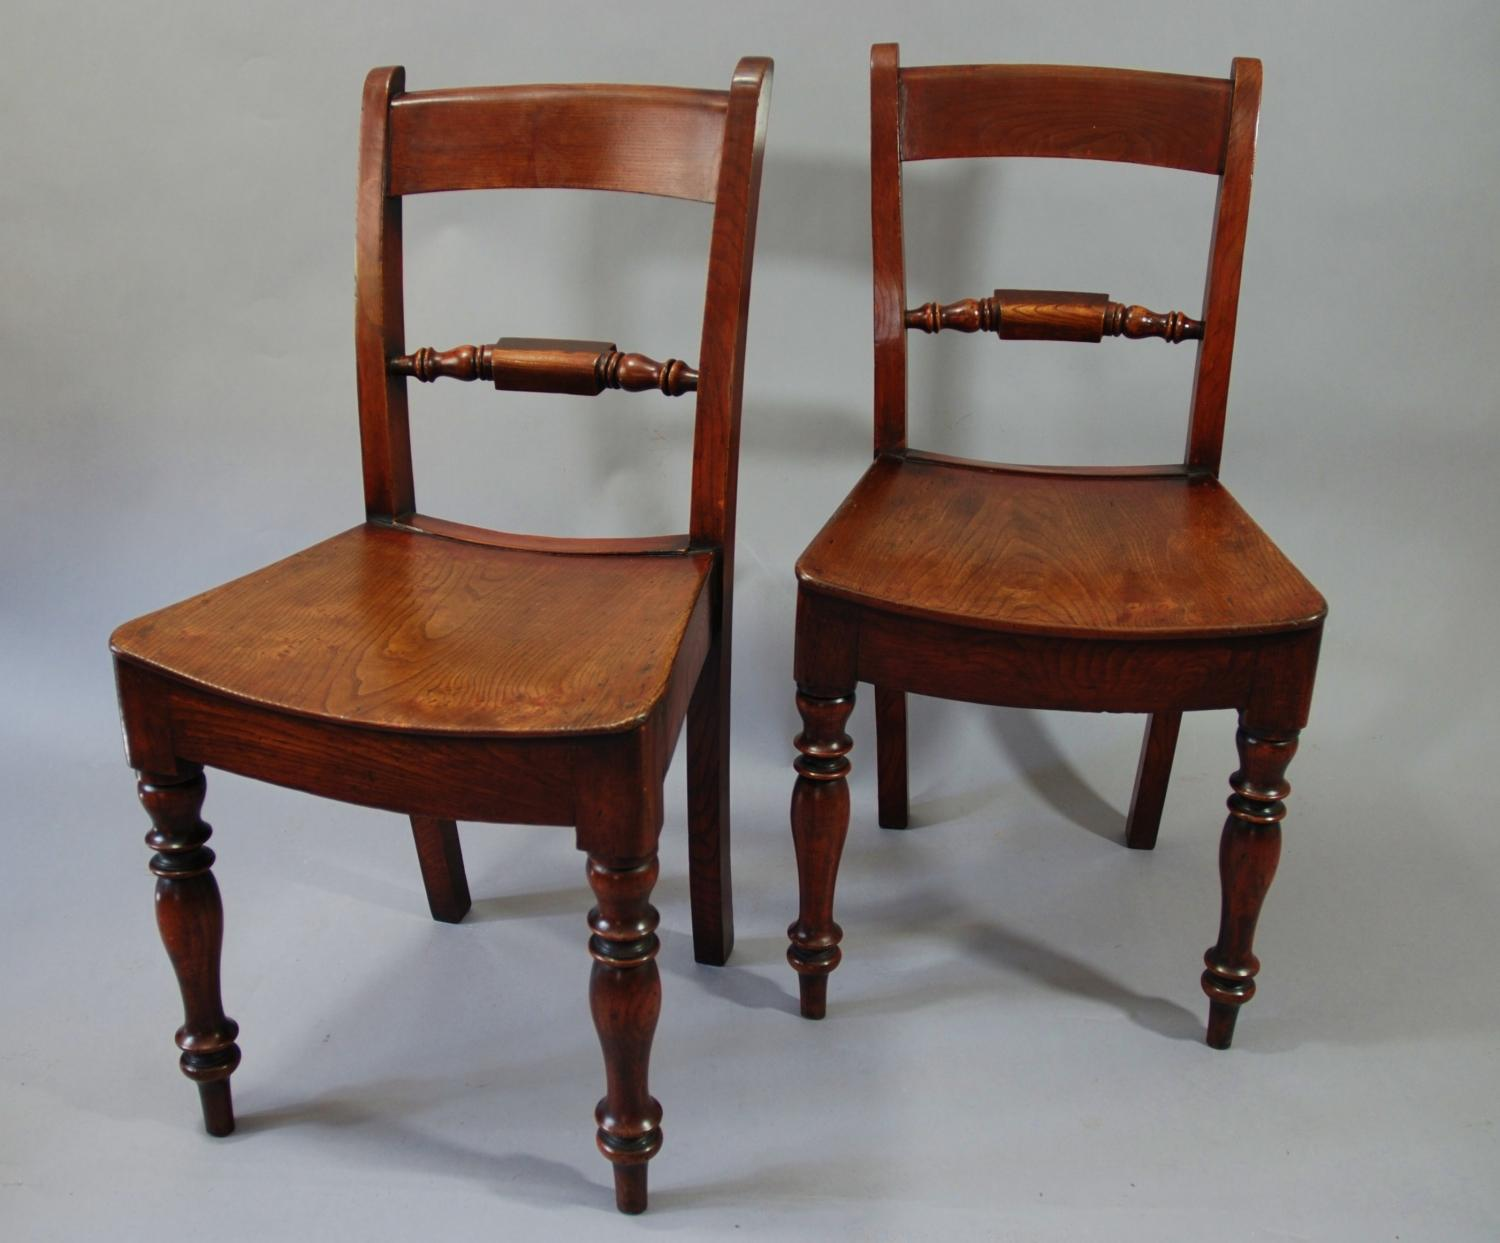 Six 19thc elm chairs